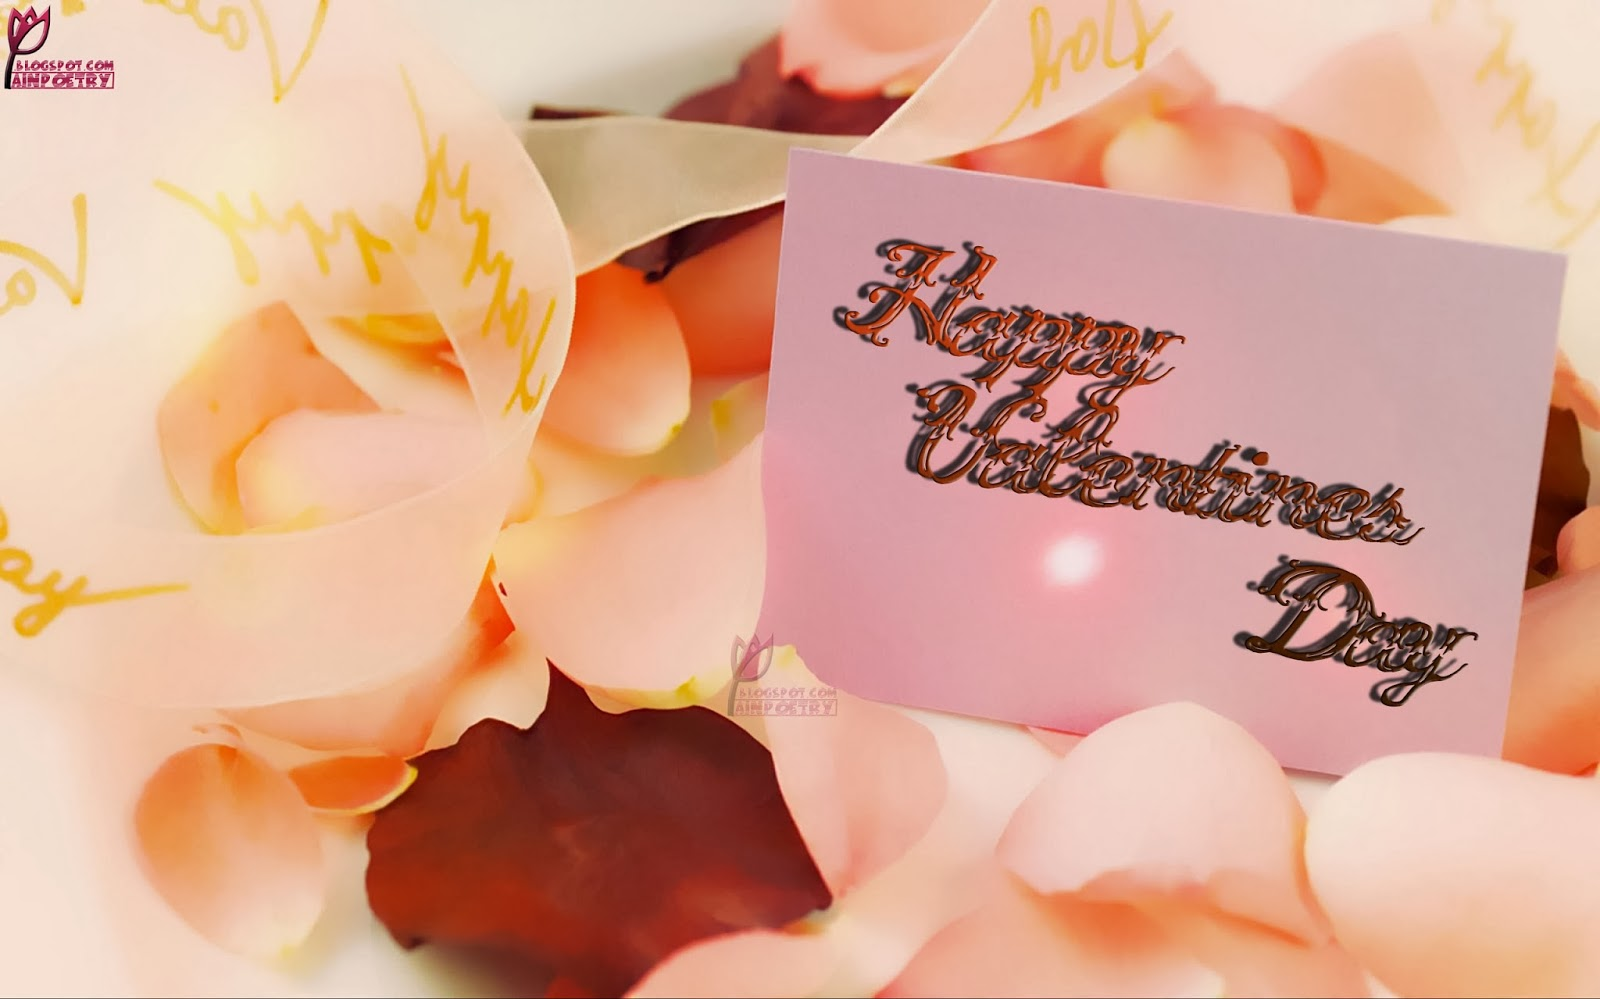 Happy-Valentines-Day-Wallpaper-Wishes-HD